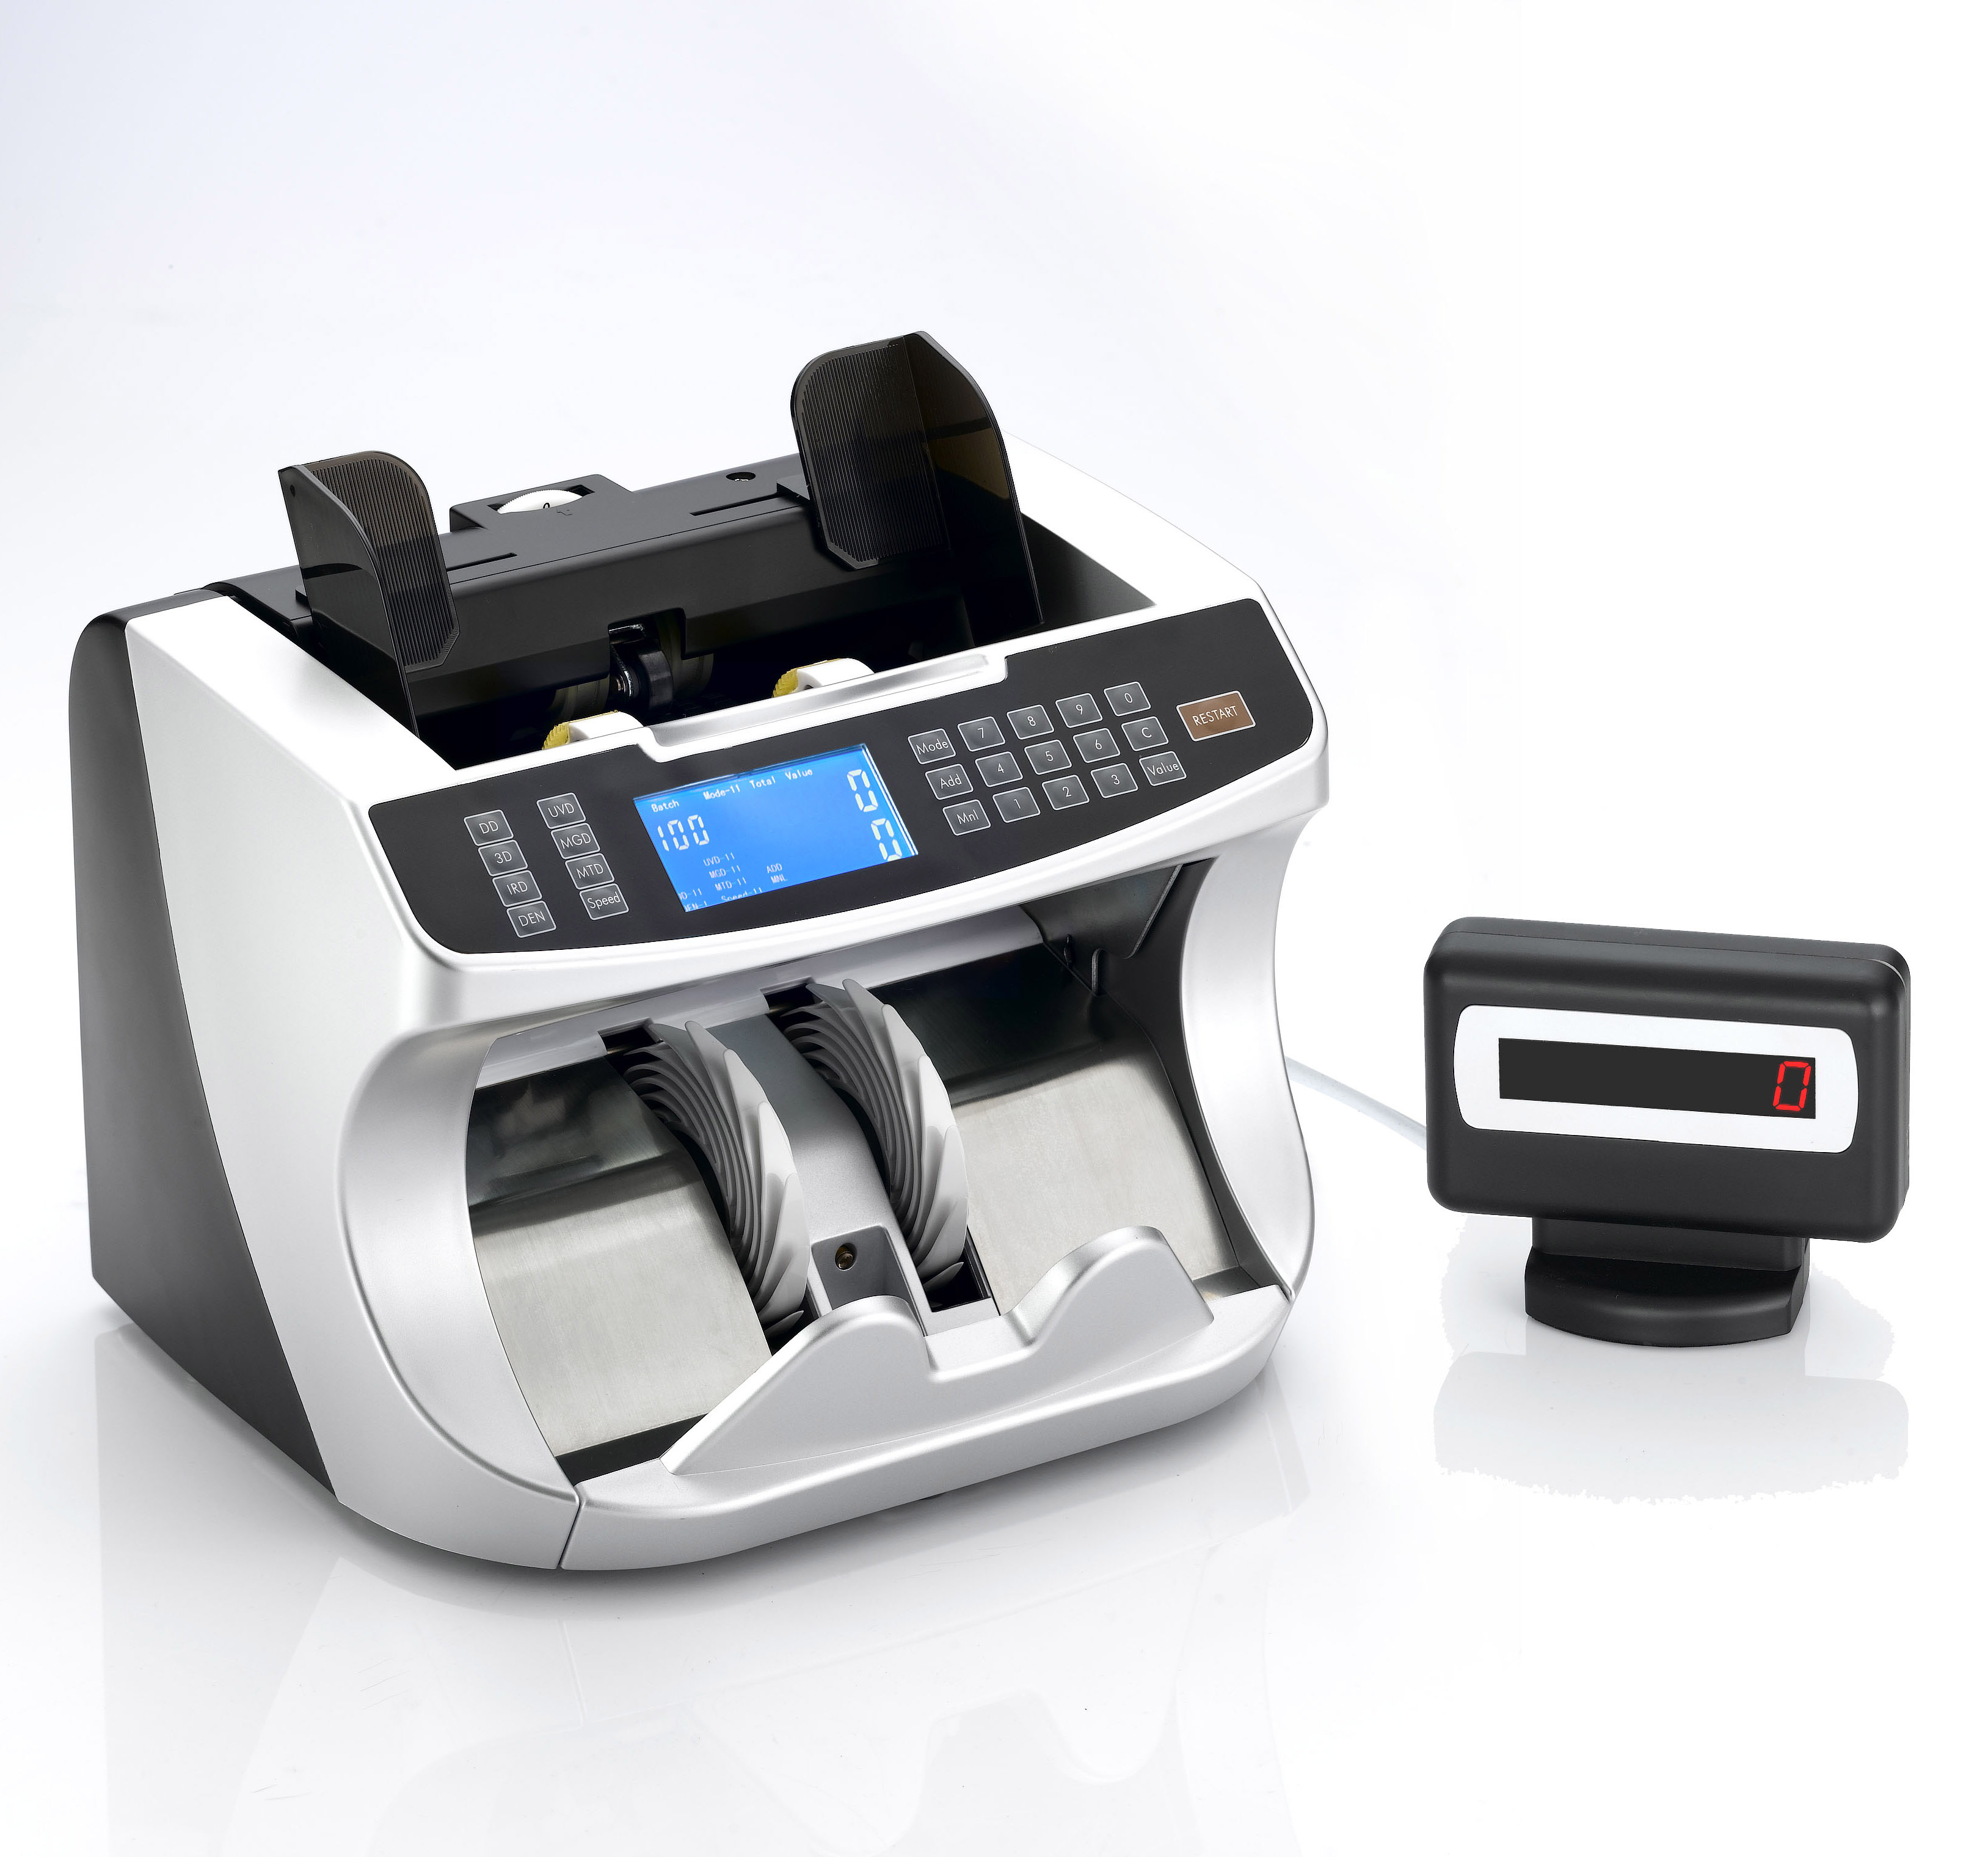 EC900 Series Professional Value Counter